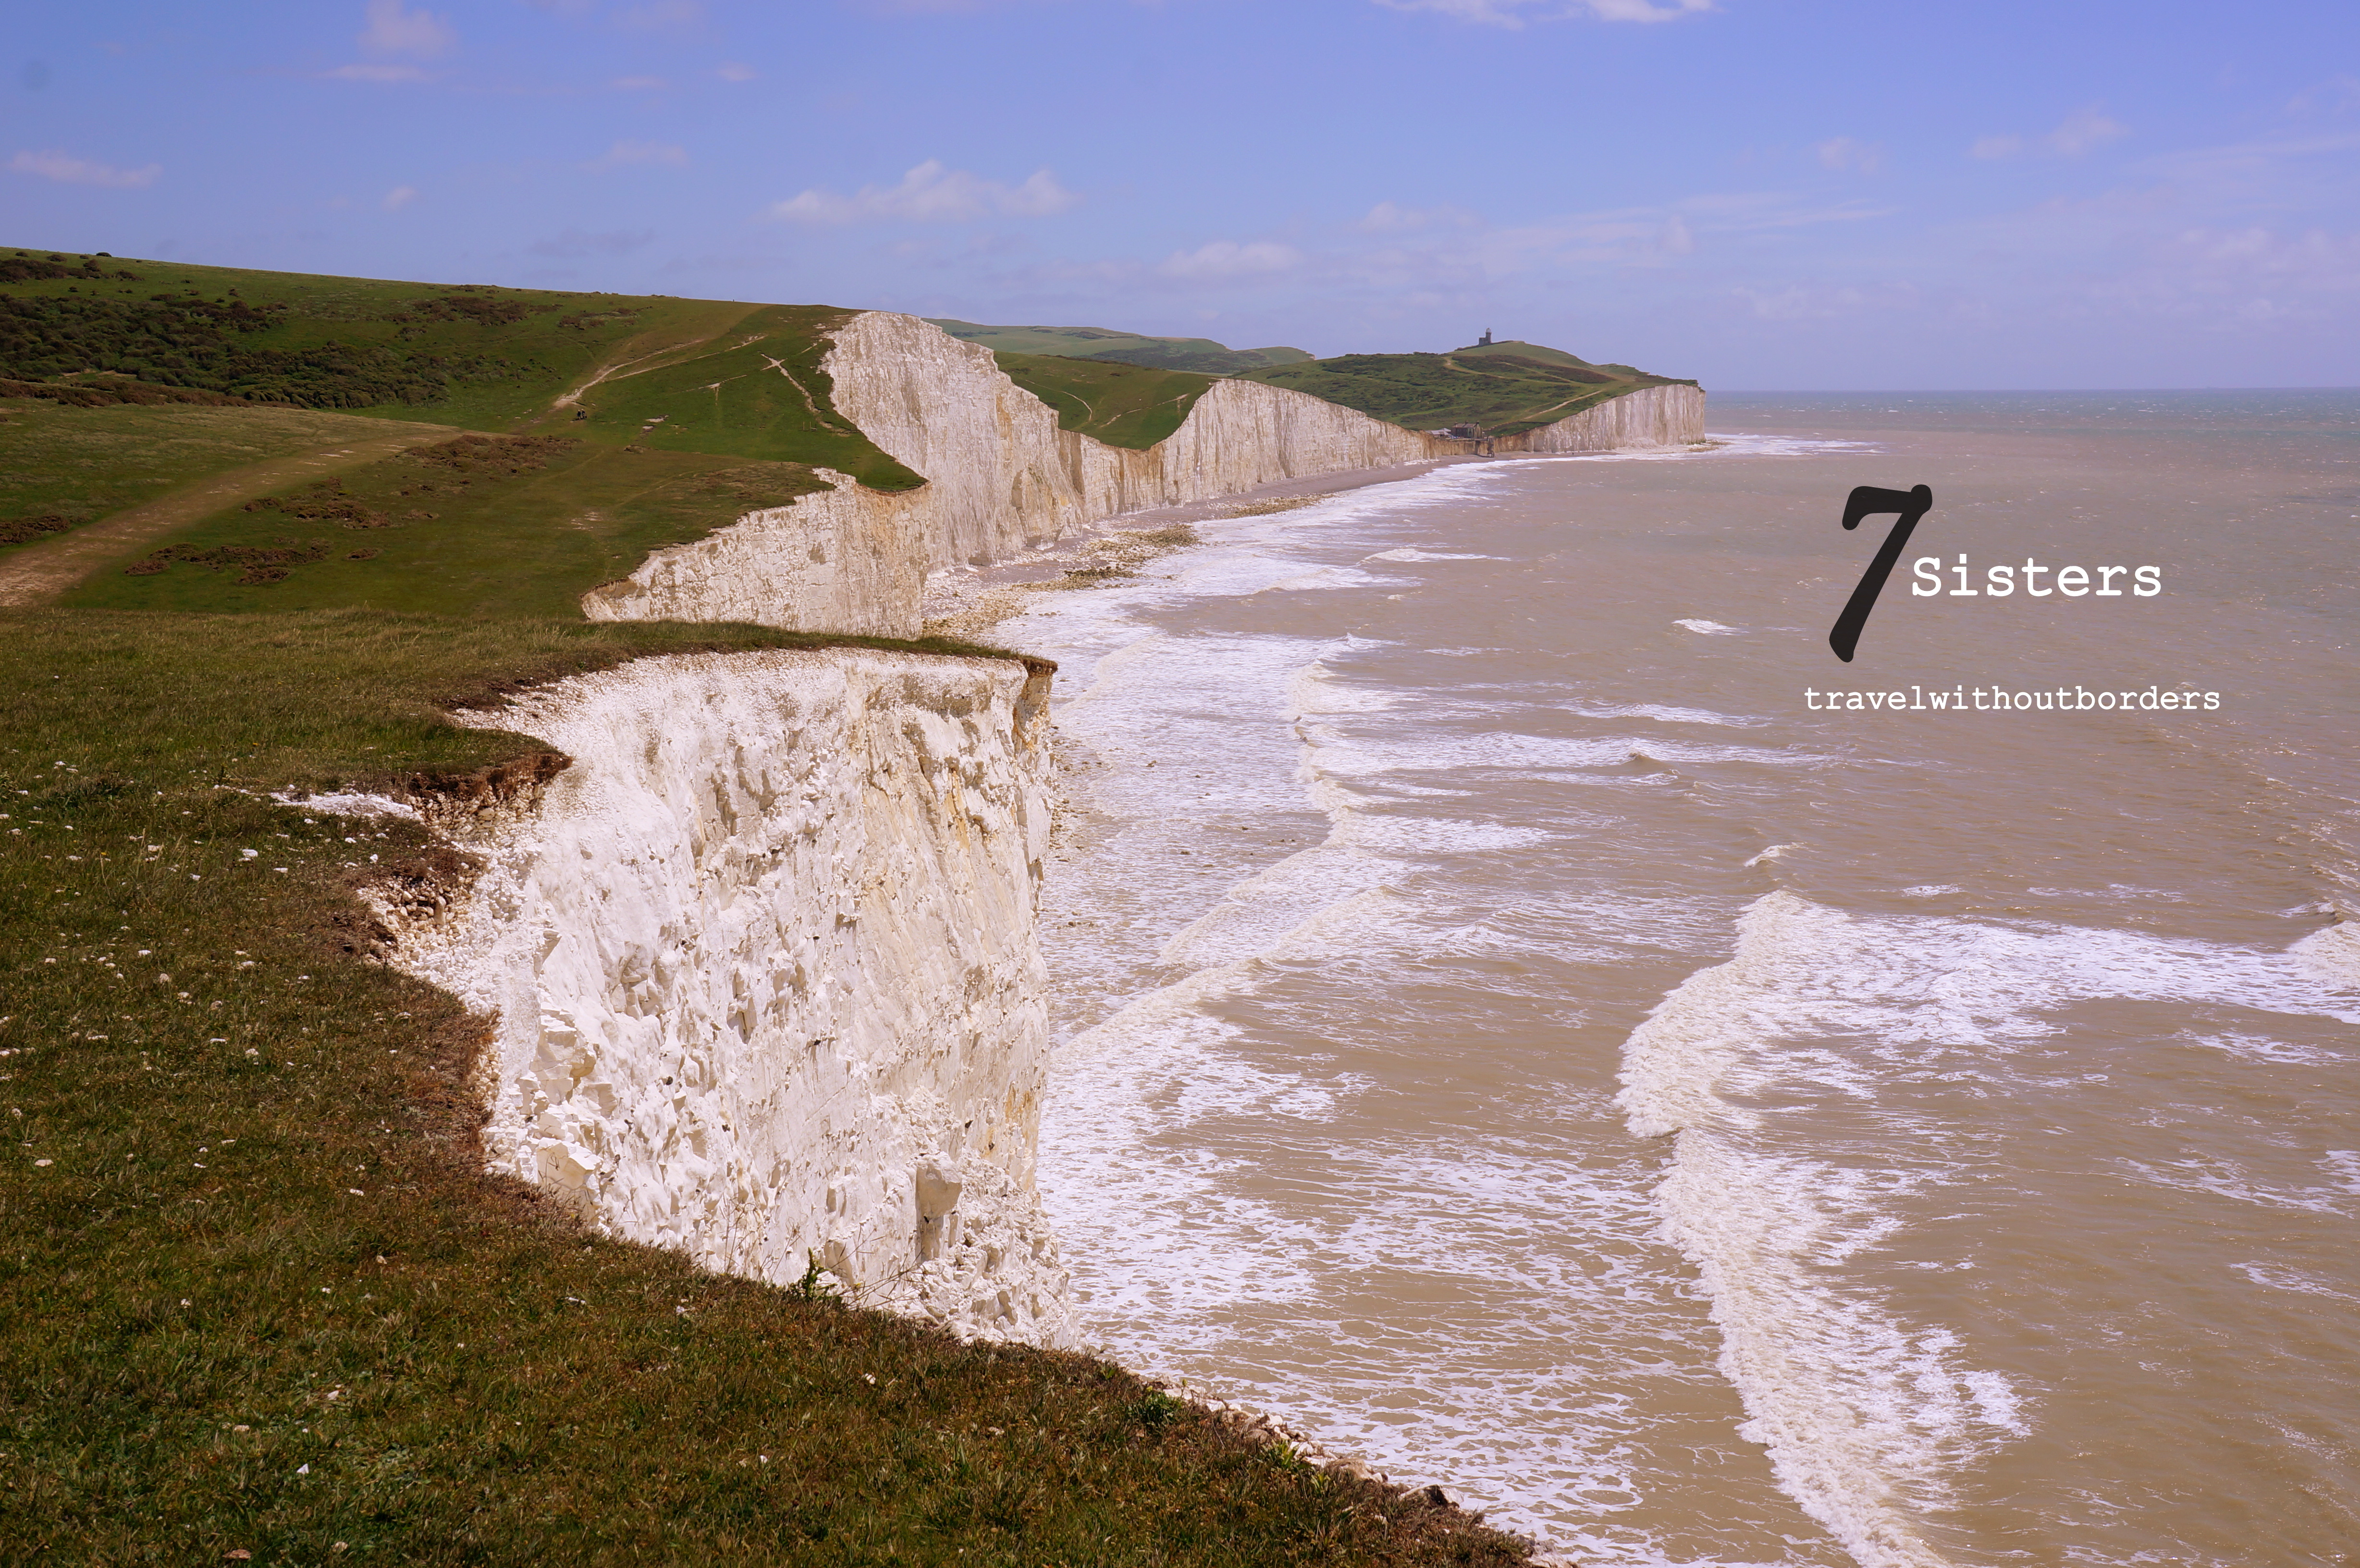 how to go to seven sisters